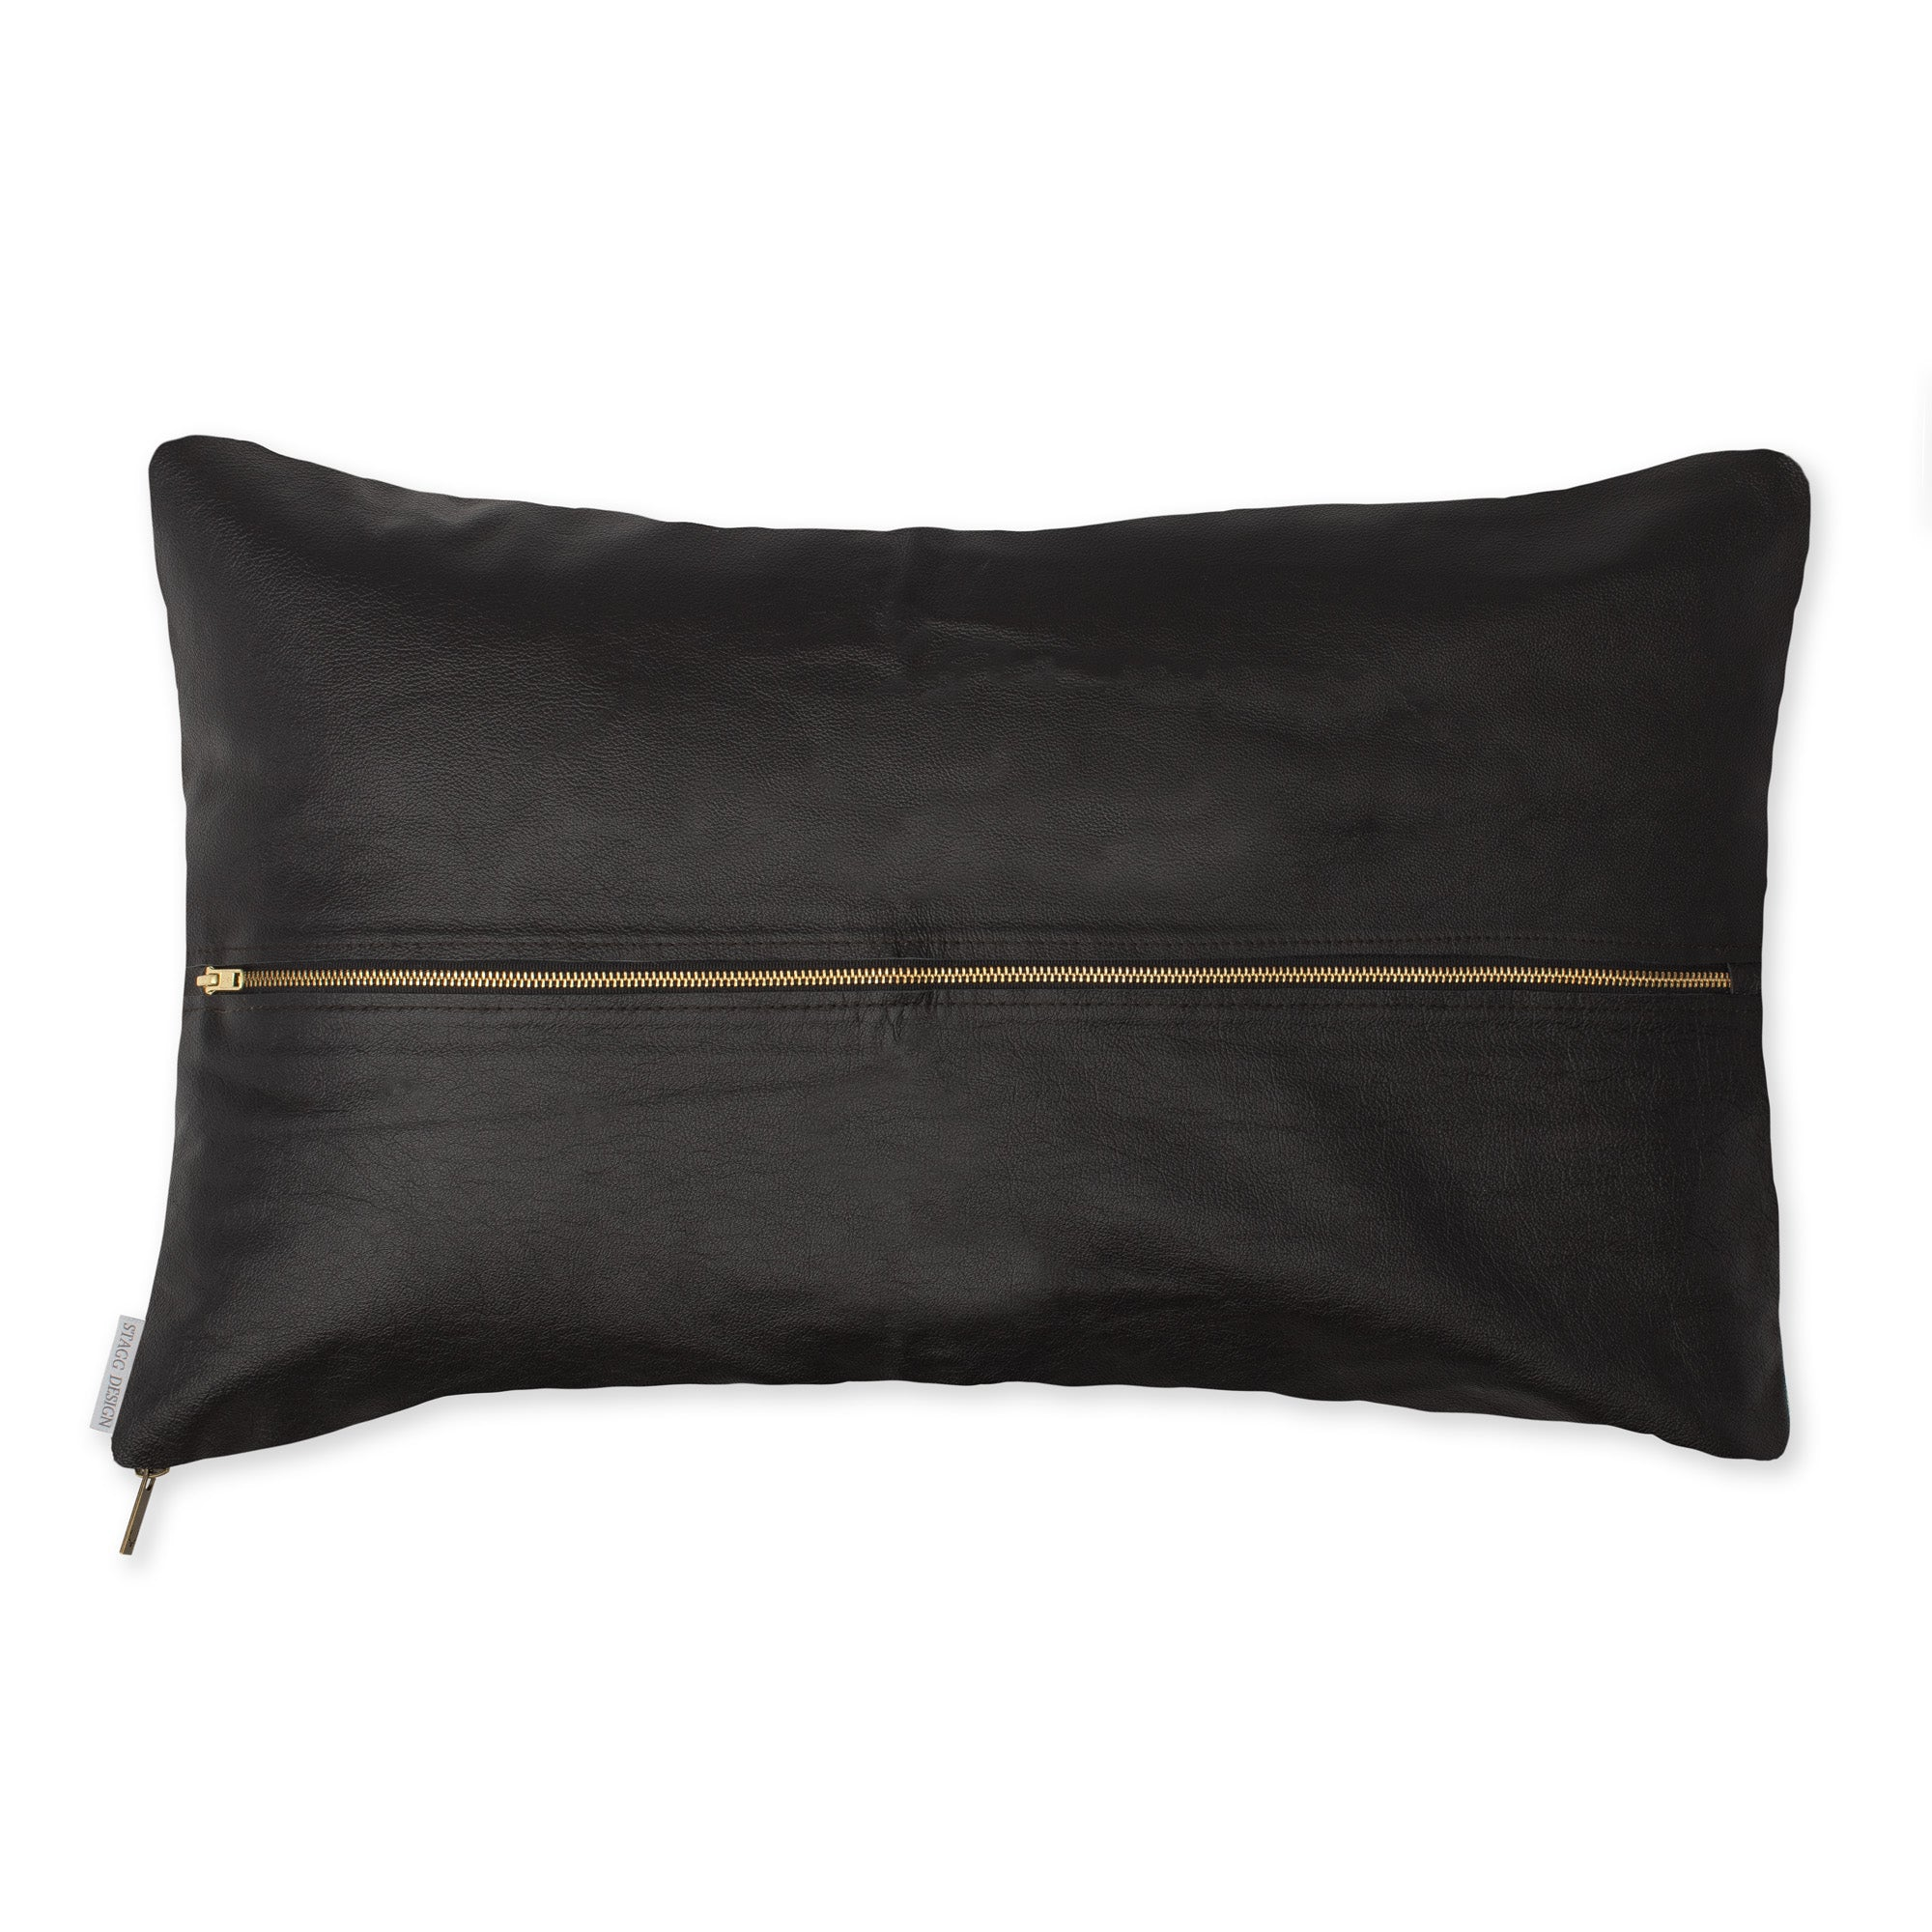 Signature Leather Pillow - Black